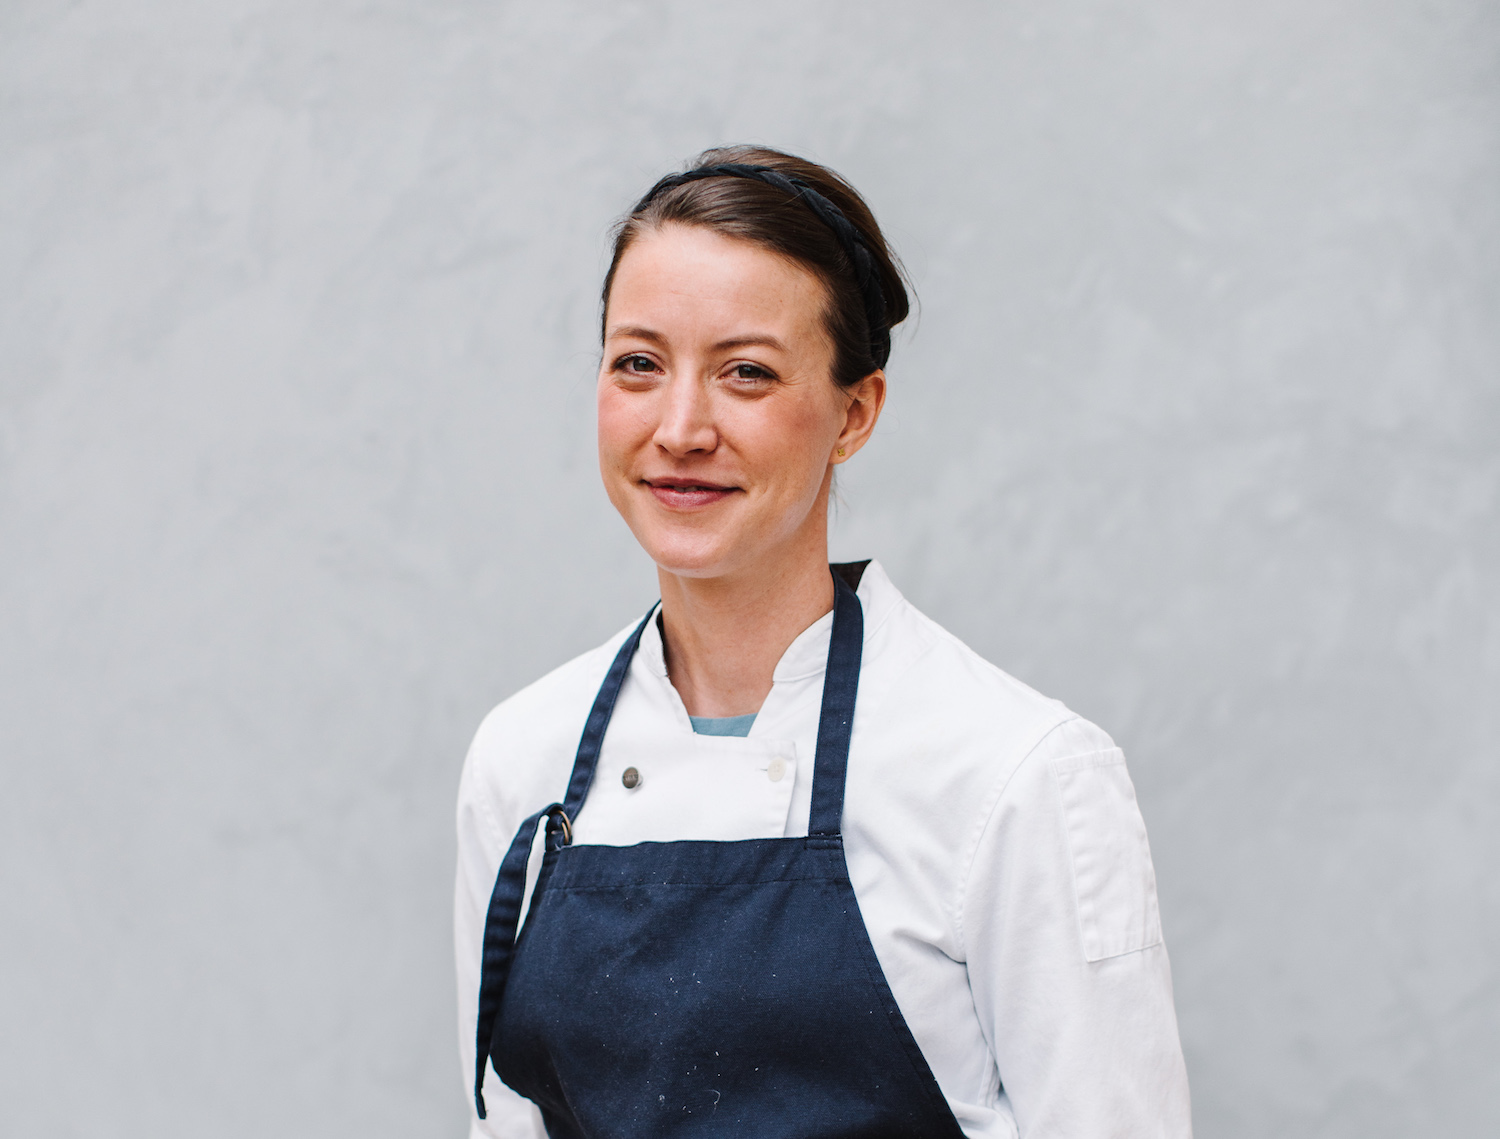 pics Eat Chic: These Female Chefs Are Taking the Culinary Scene By Storm